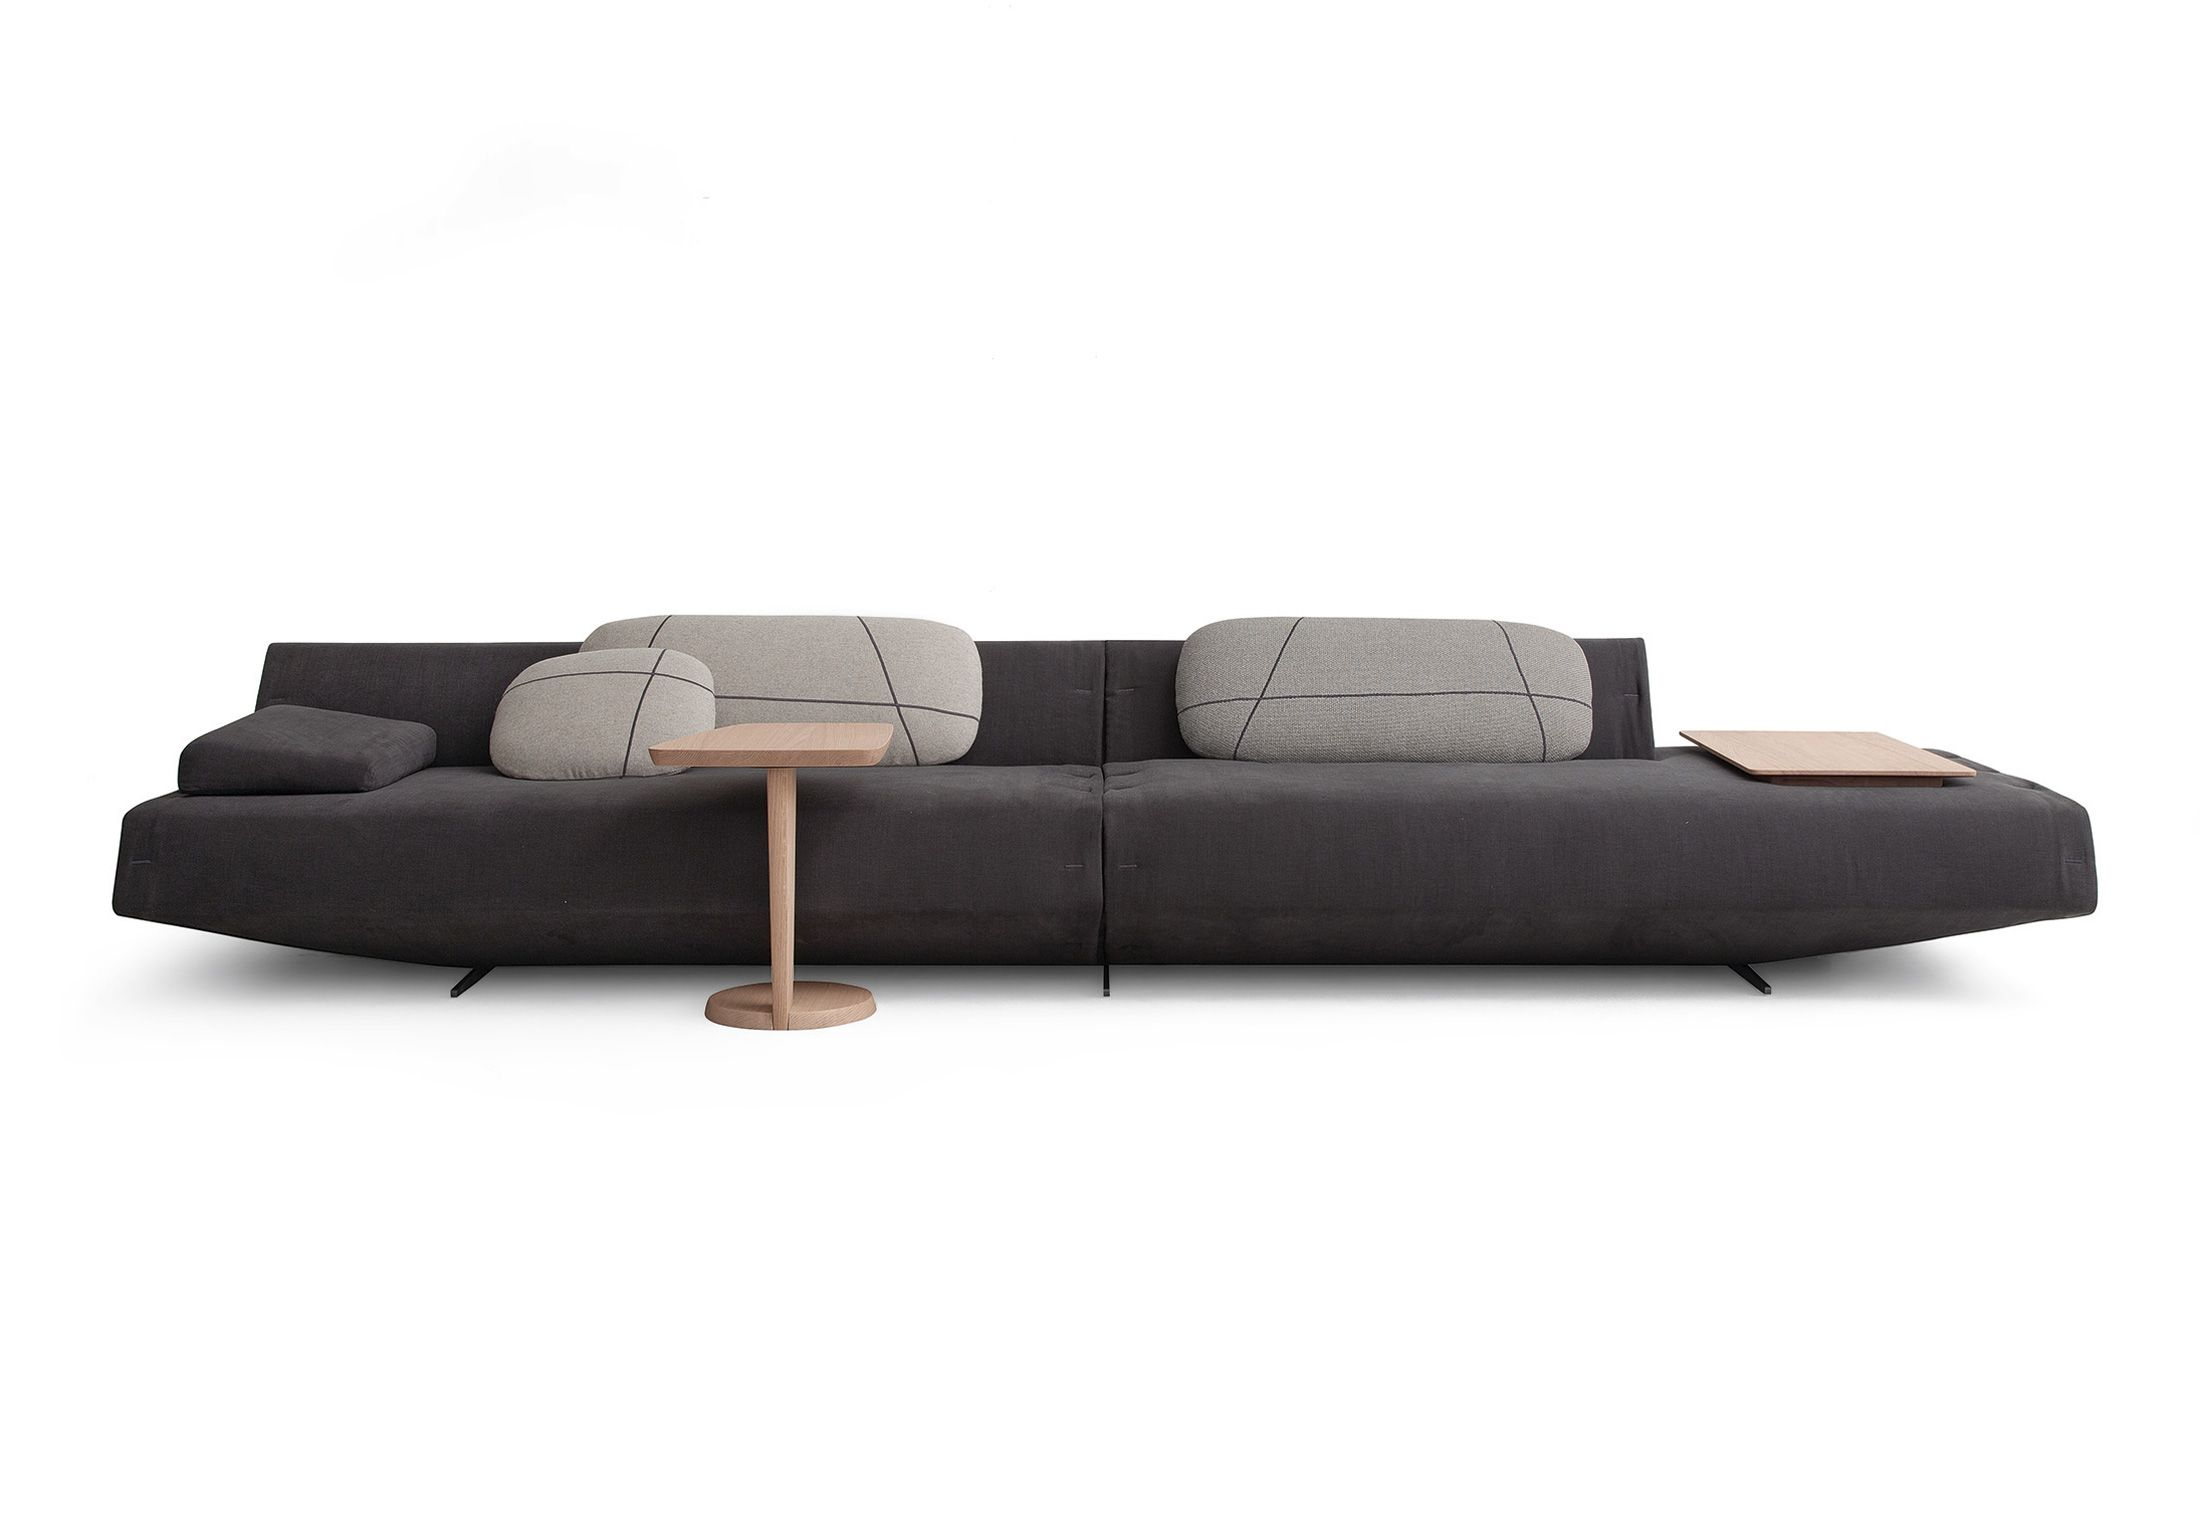 Sofa Covers Poliform Sydney sofa Jean Marie Massaud